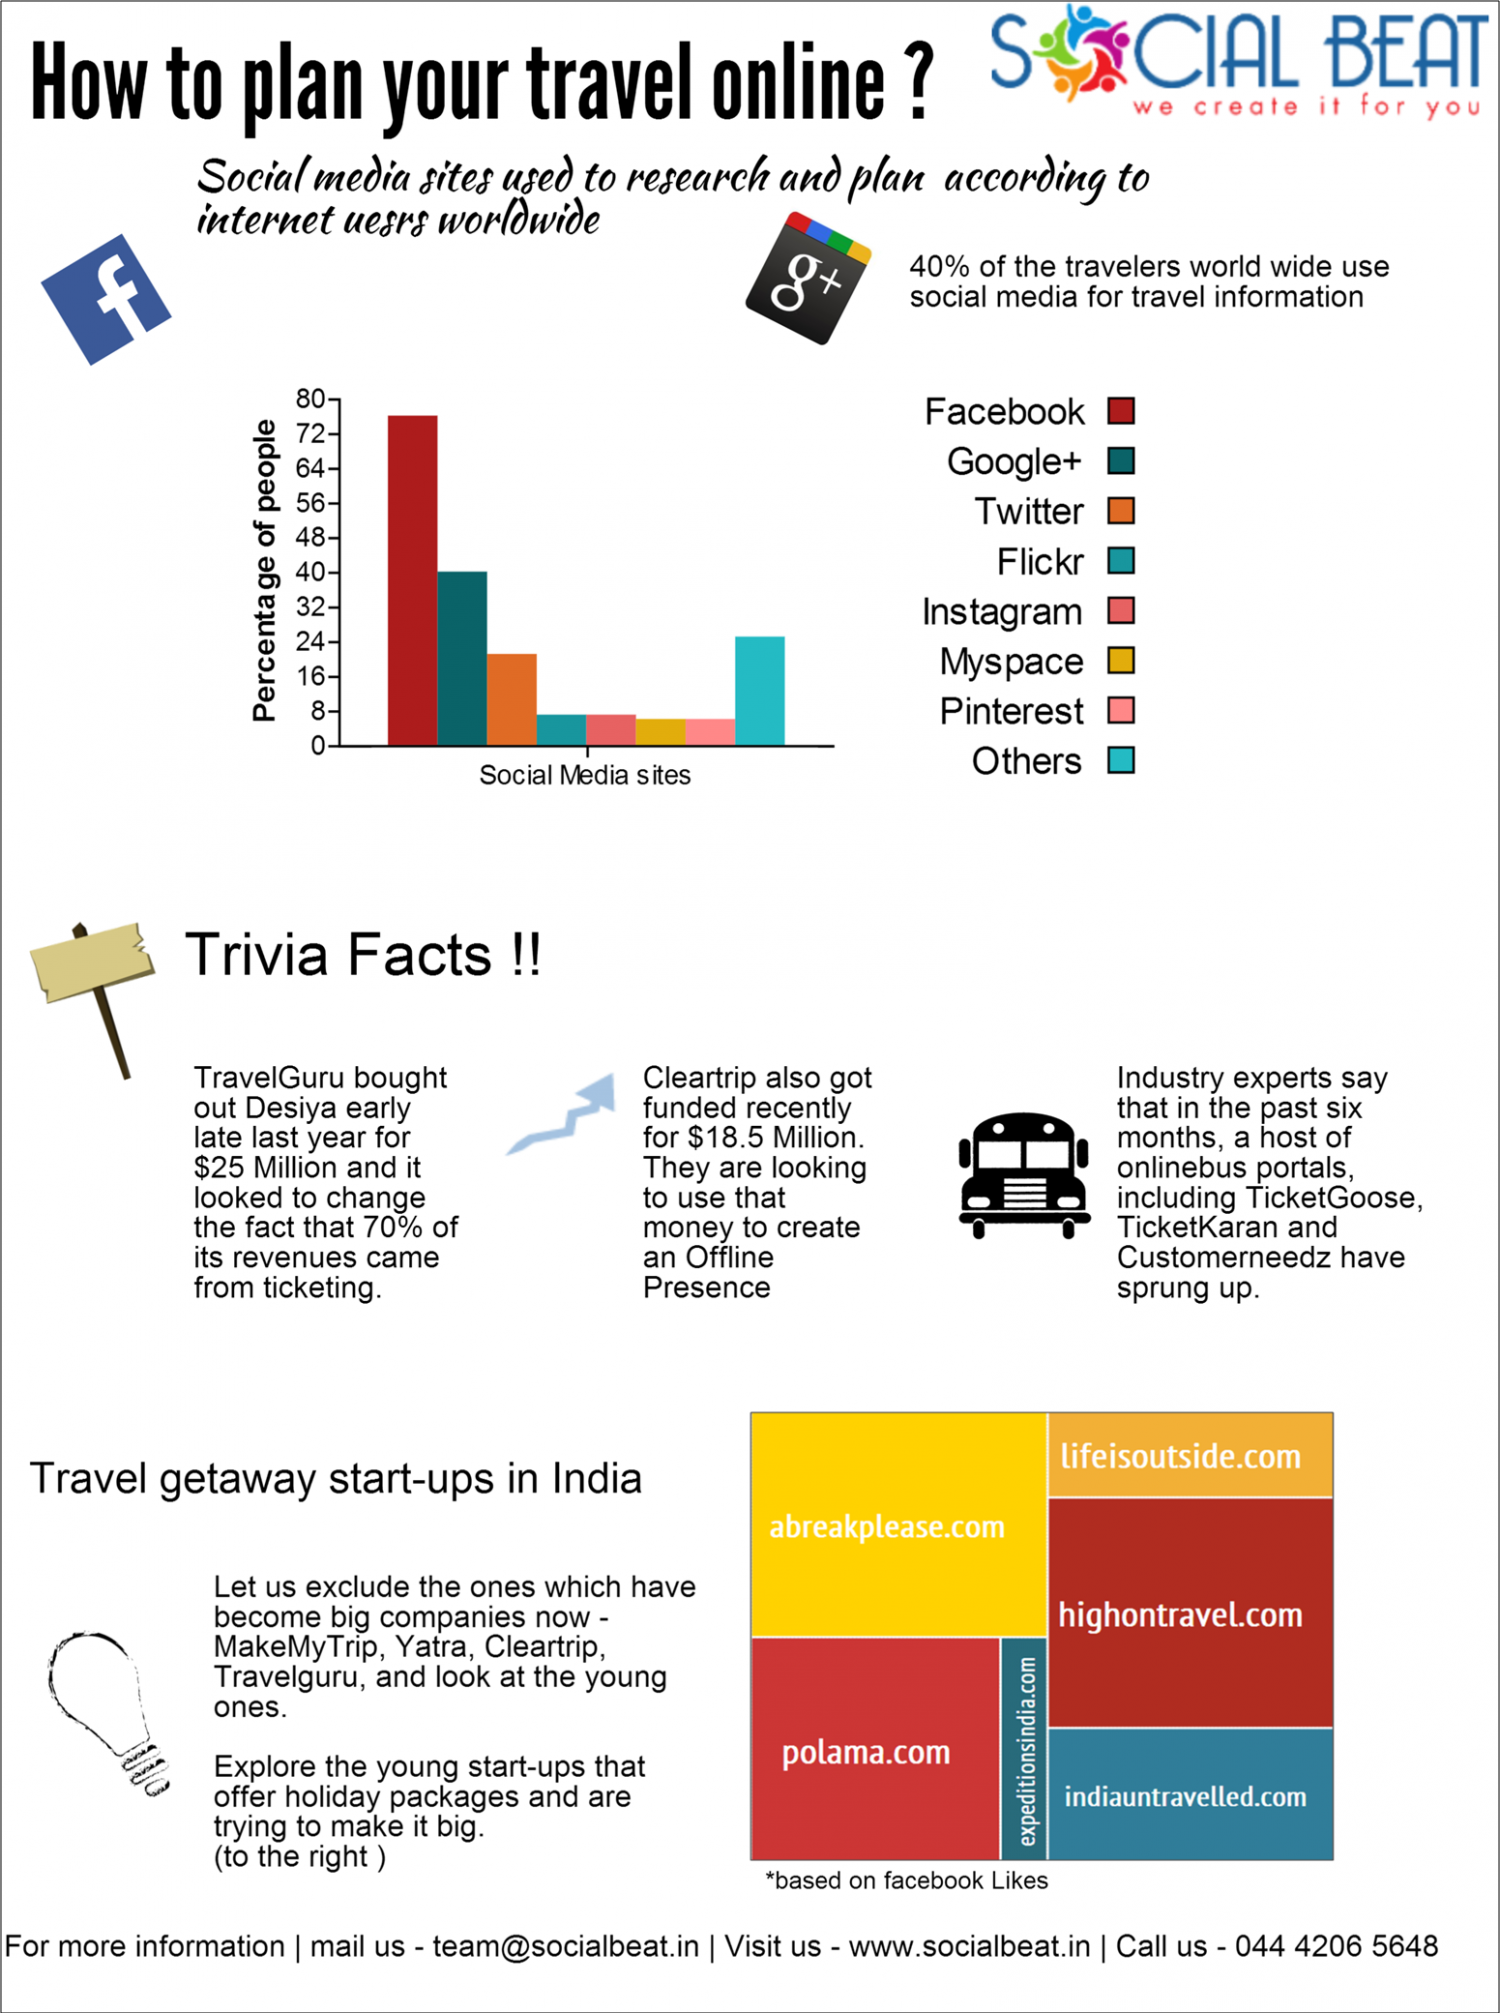 How to plan your travel online in India Infographic